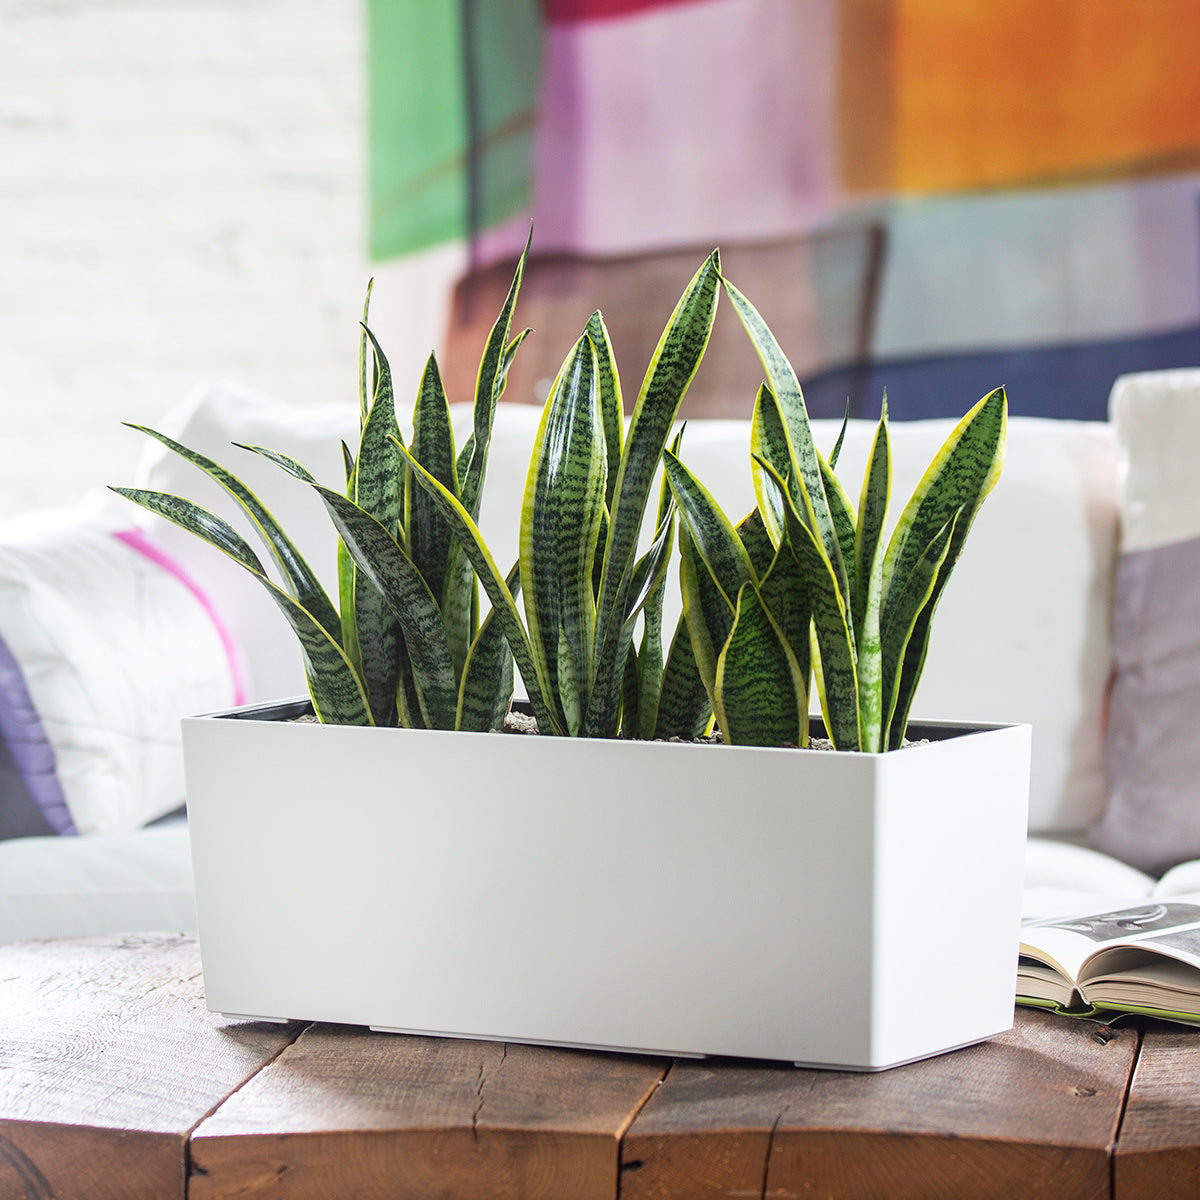 Snake plant potted in Lechuza Balconera white self-watering planter - My City Plants